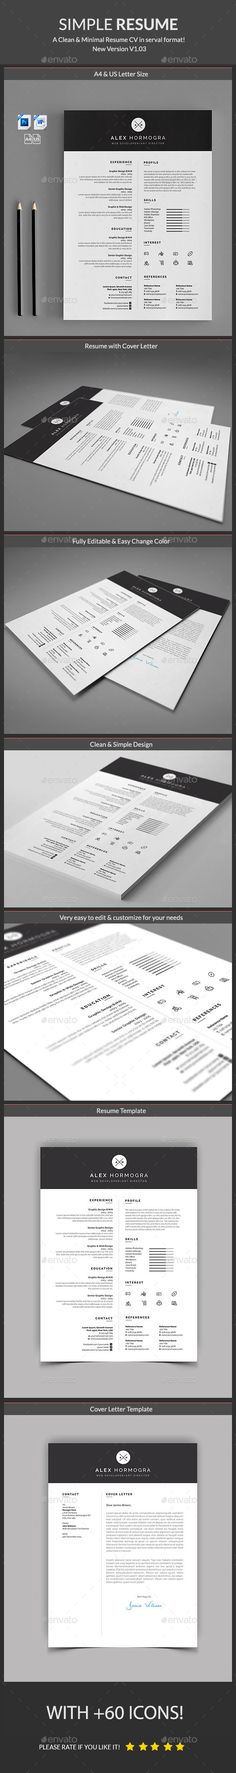 Resume Template PSD, MS Word. Download here: https://graphicriver.net/item/resume/17166267?ref=ksioks